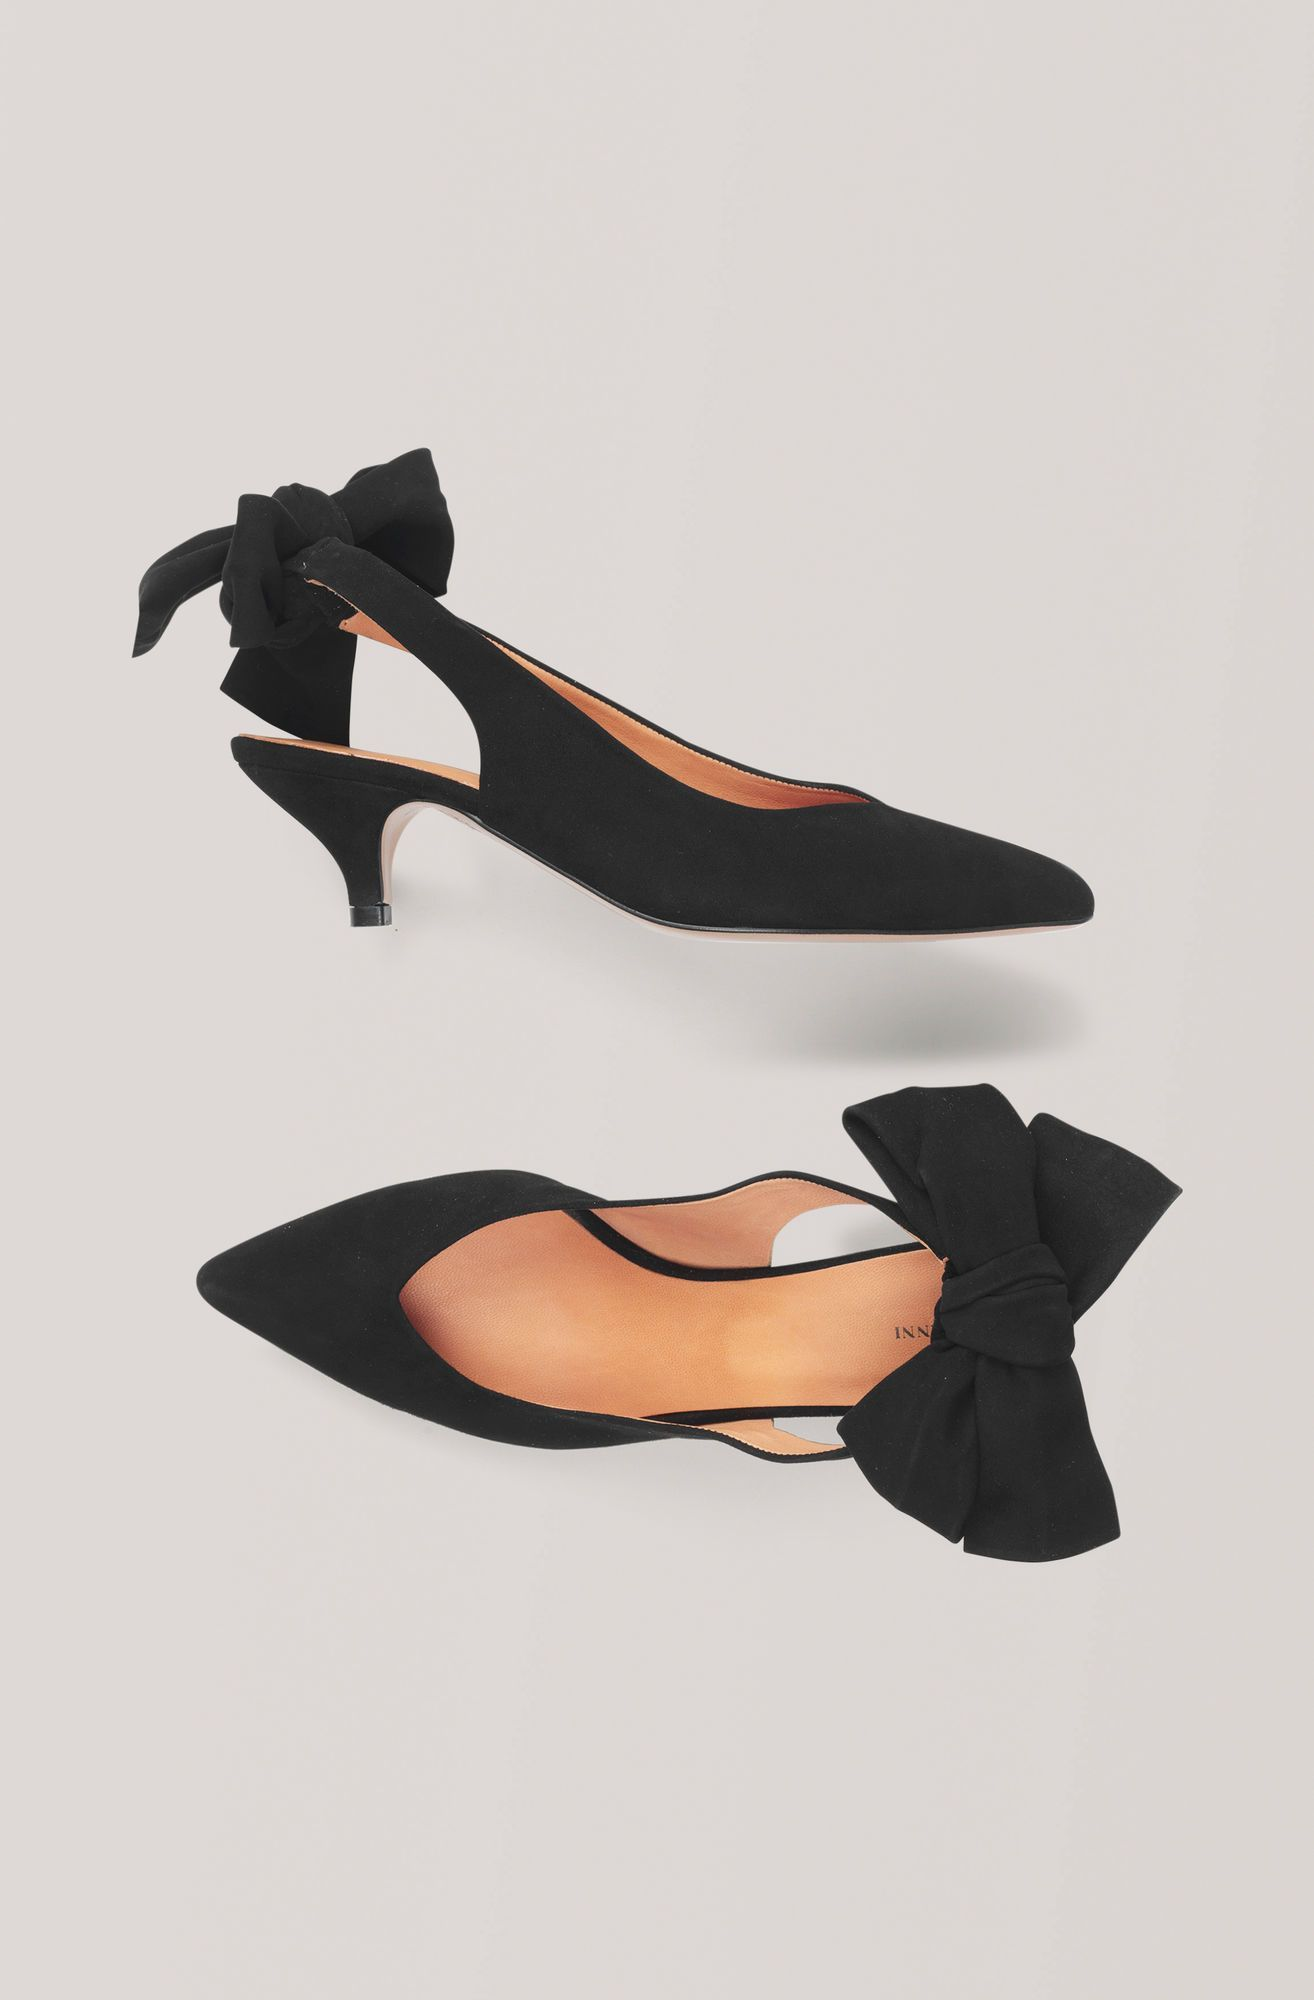 Ganni Us Bow Kitten Heel Pumps 140 00 2020 Stil Trendler